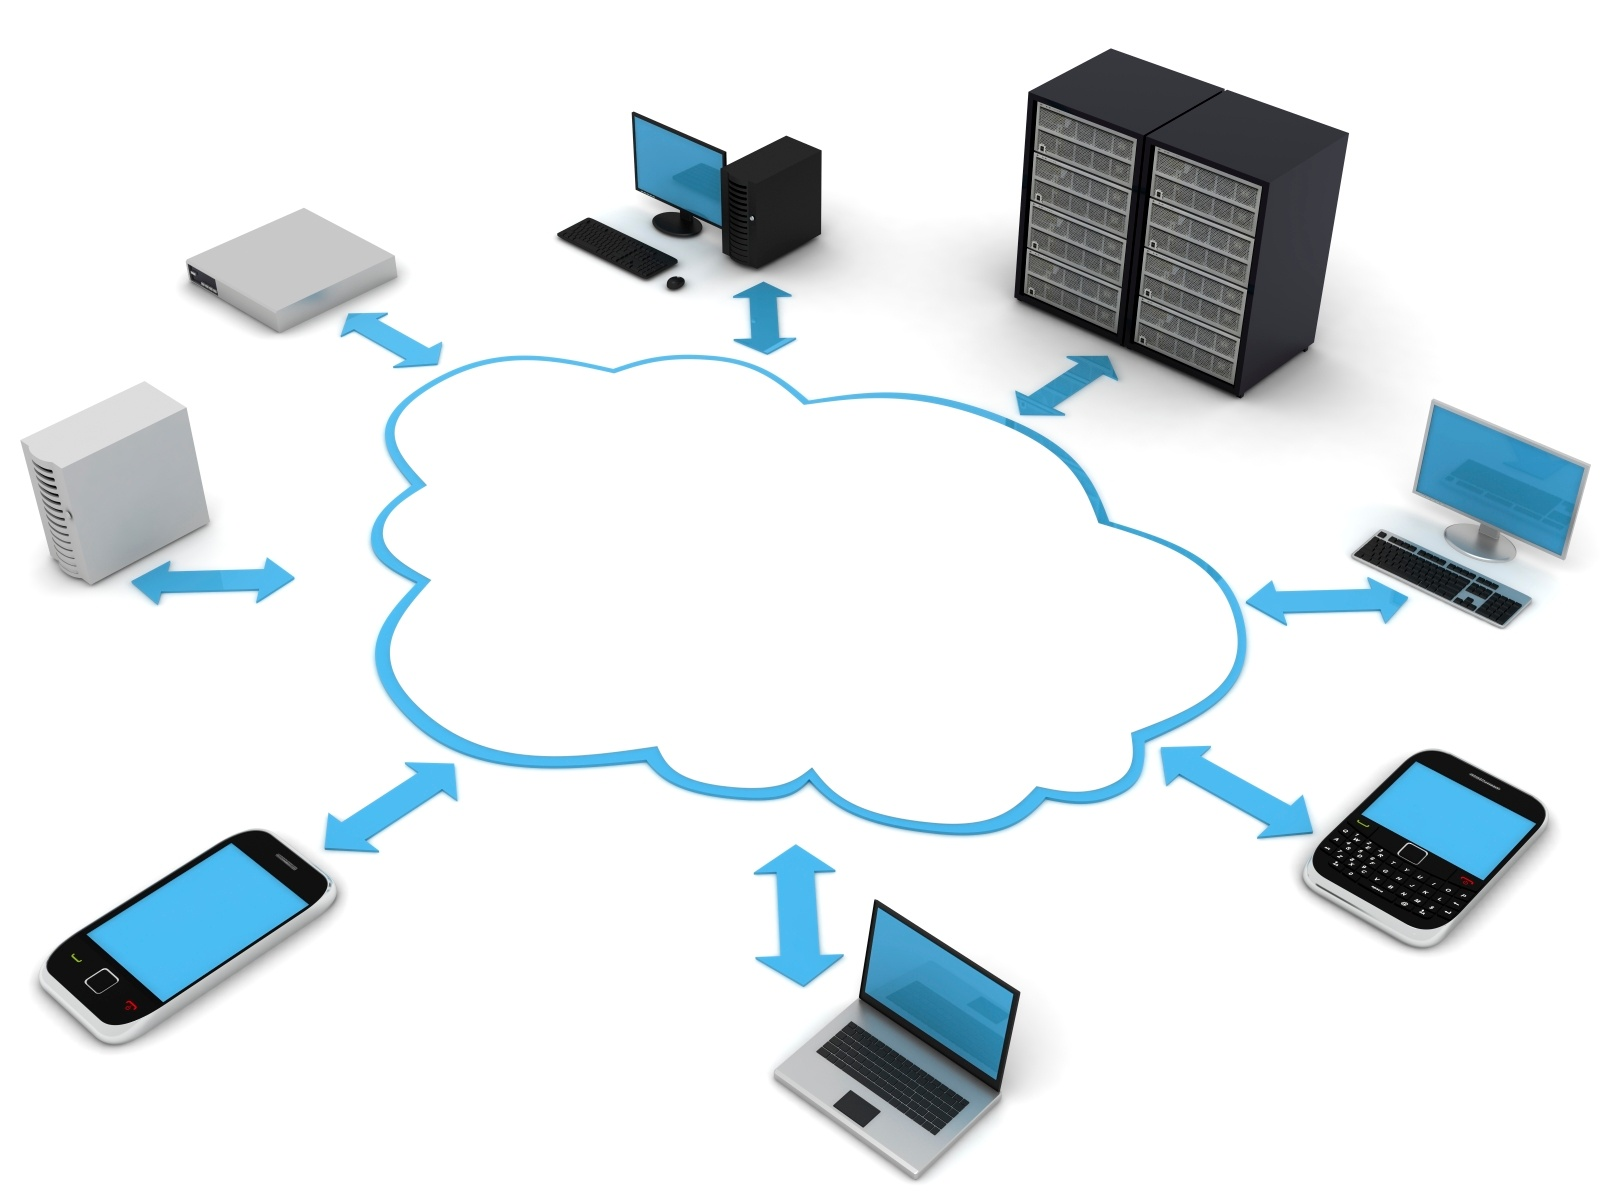 supply-chain-management-cloud-computing.jpg